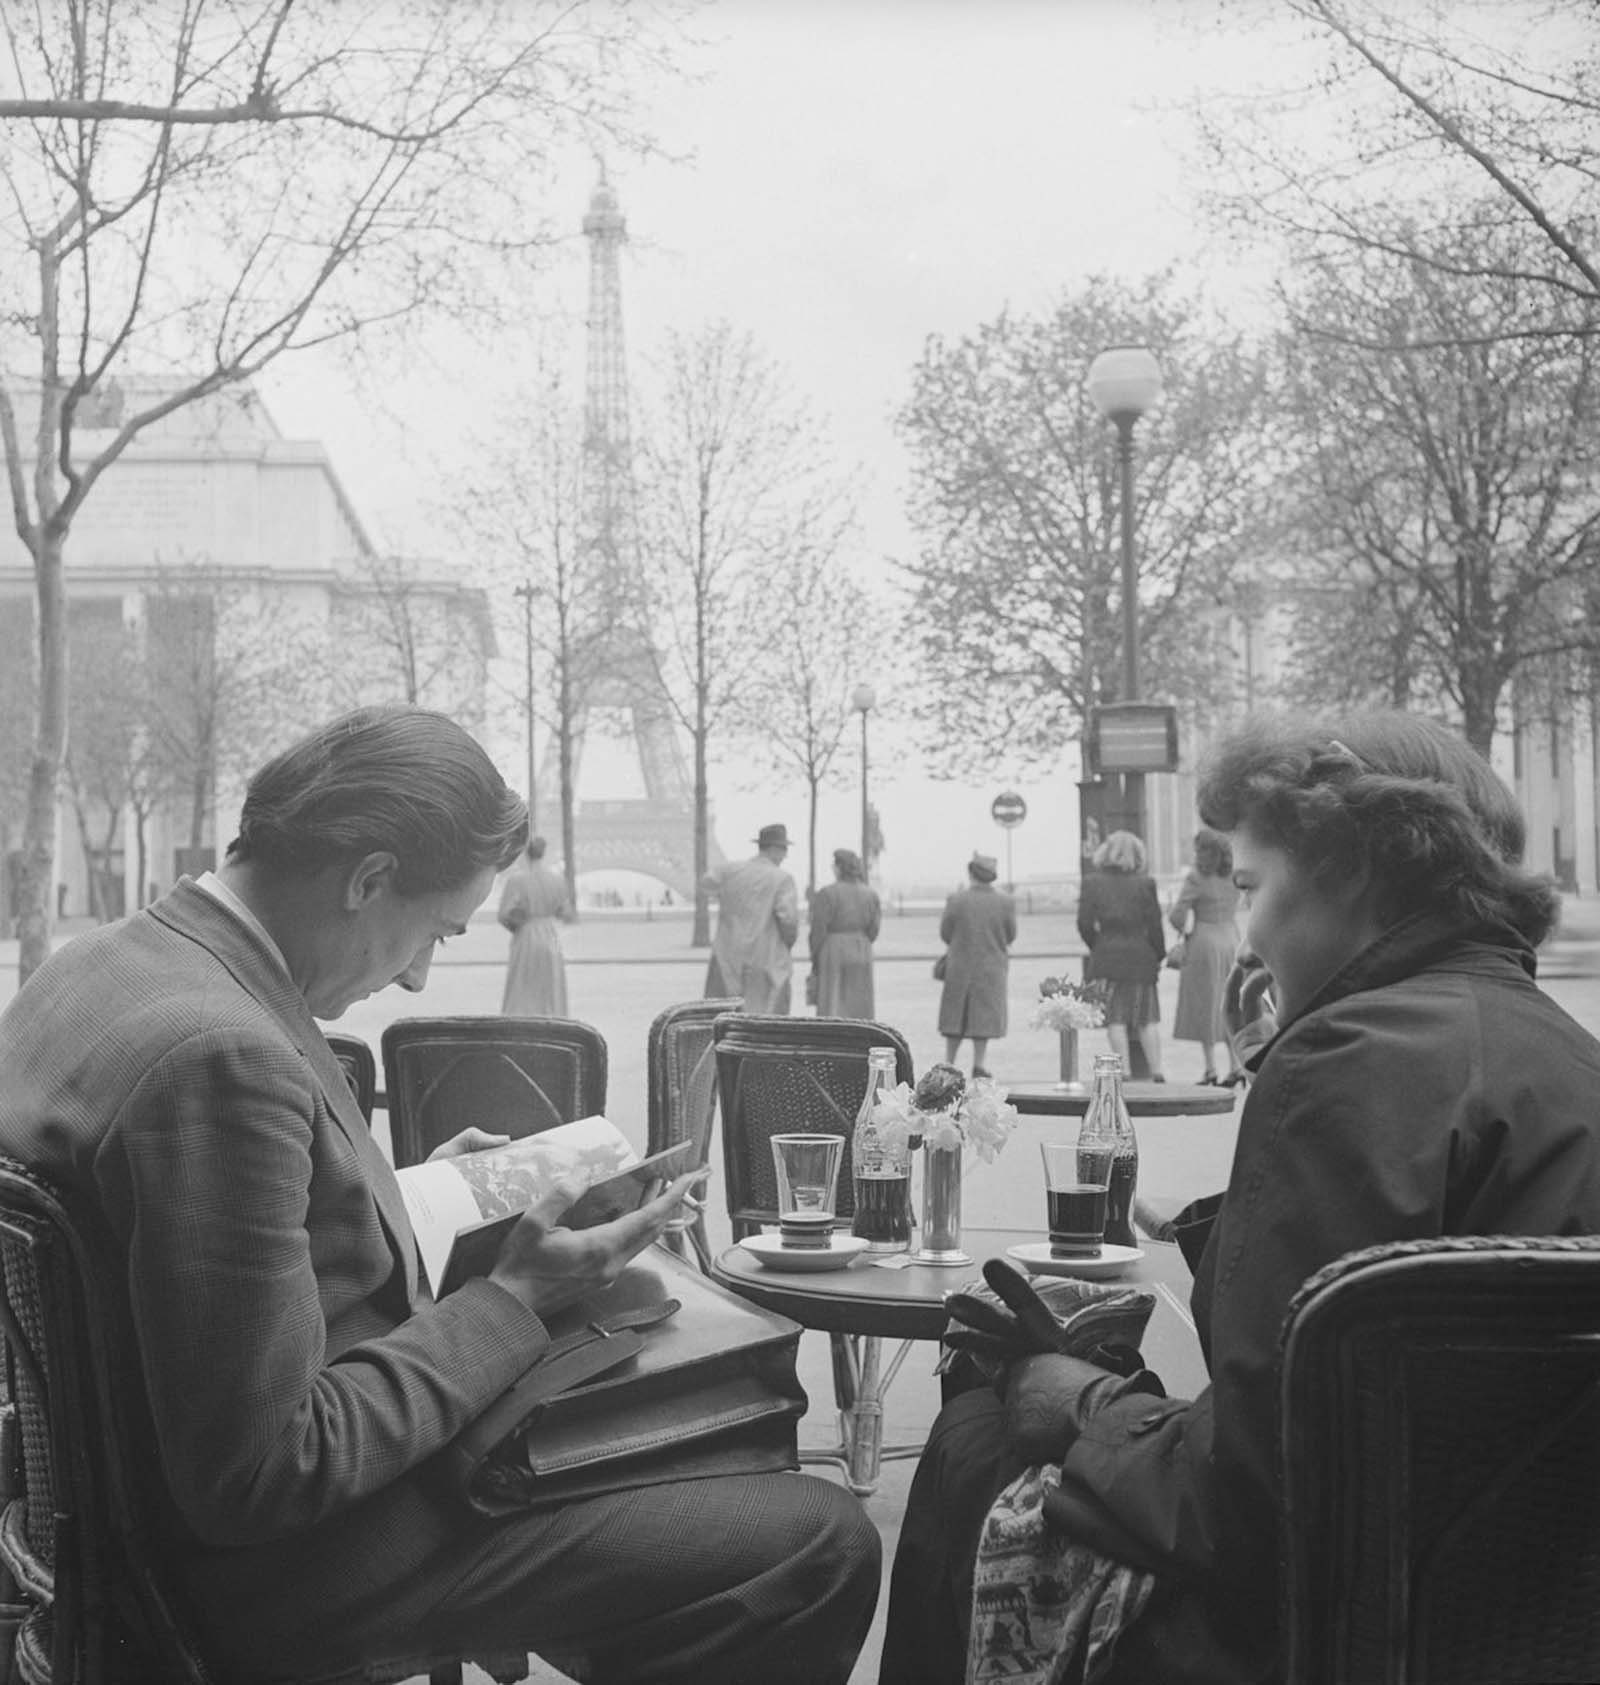 An unidentified couple sit at a sidwalk cafe near the Eiffel Tower and read. Each has a bottle of Coca-Cola in front of them.